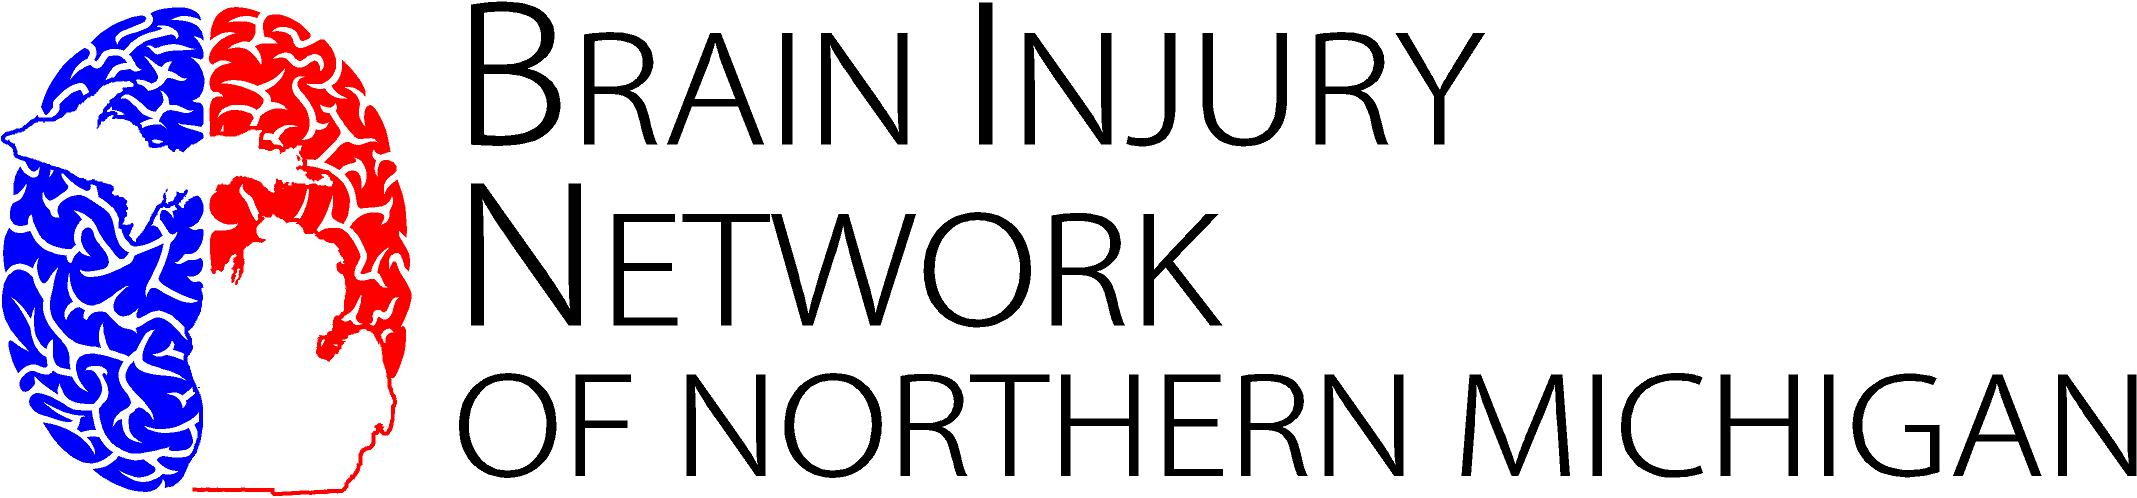 brain injury of northern michigan logo